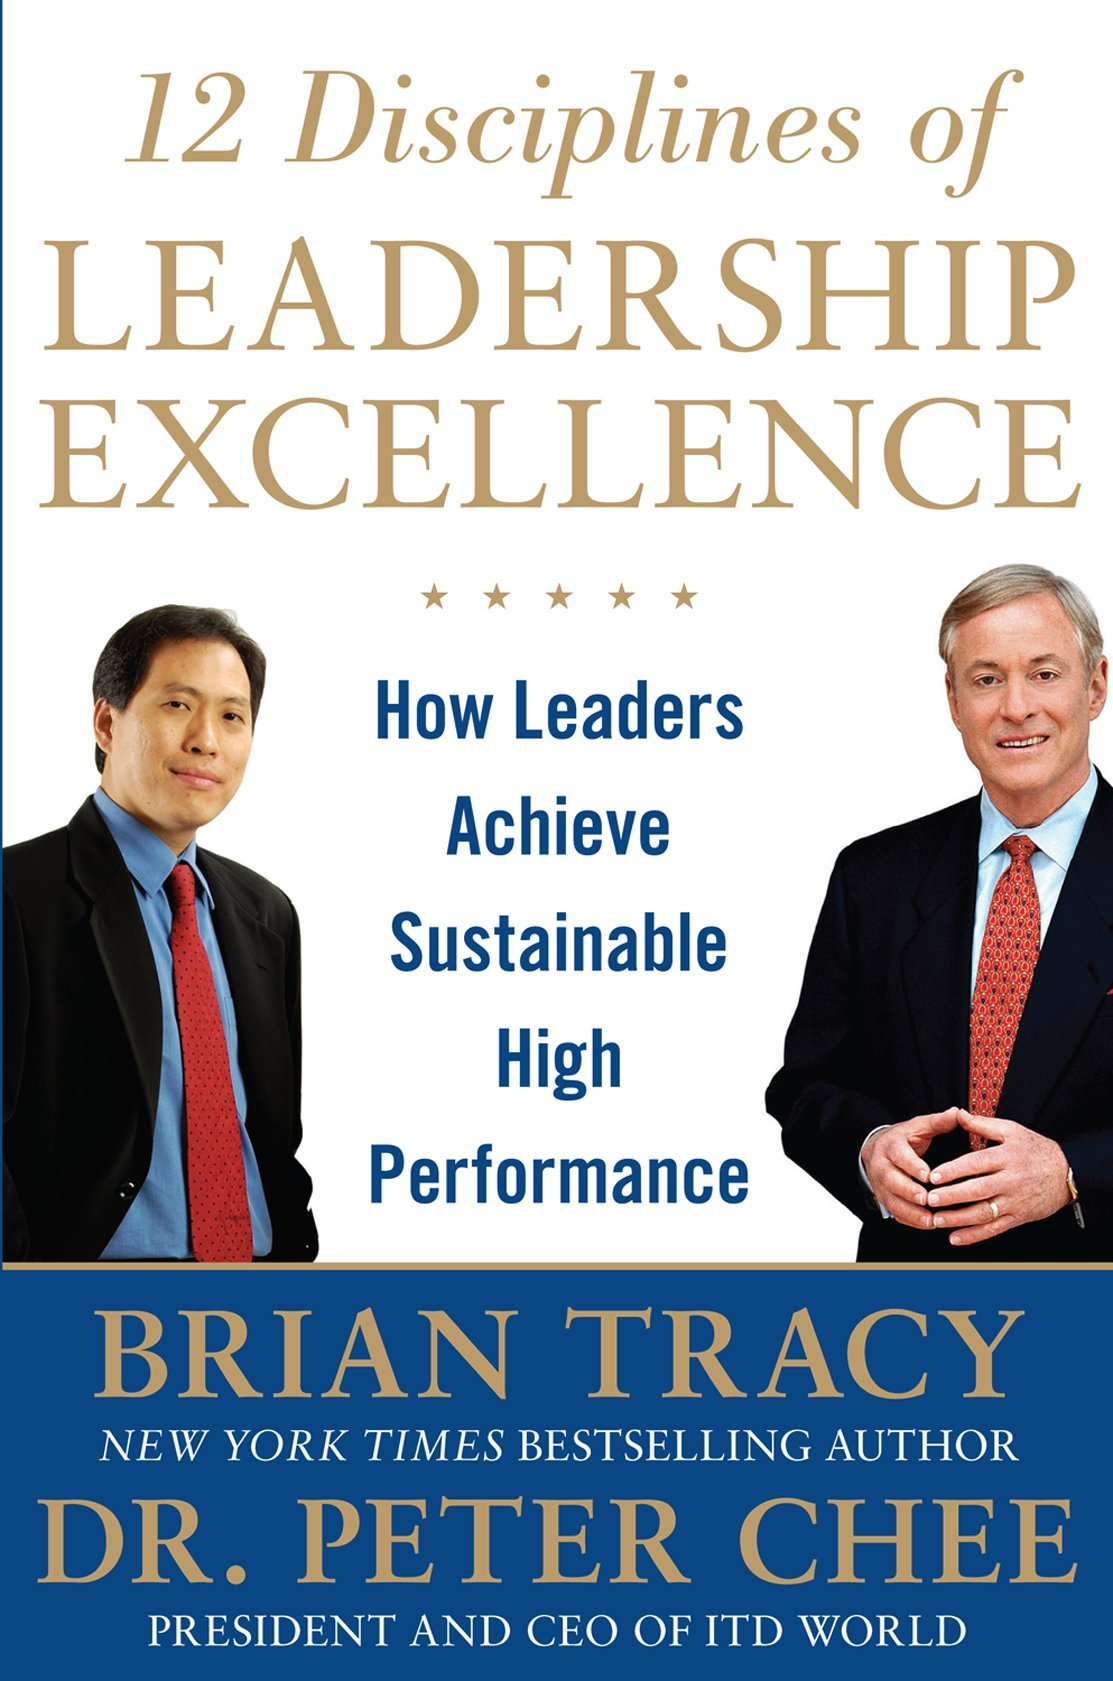 Read Online 12 Disciplines of Leadership Excellence: How Leaders Achieve Sustainable High Performance PDF